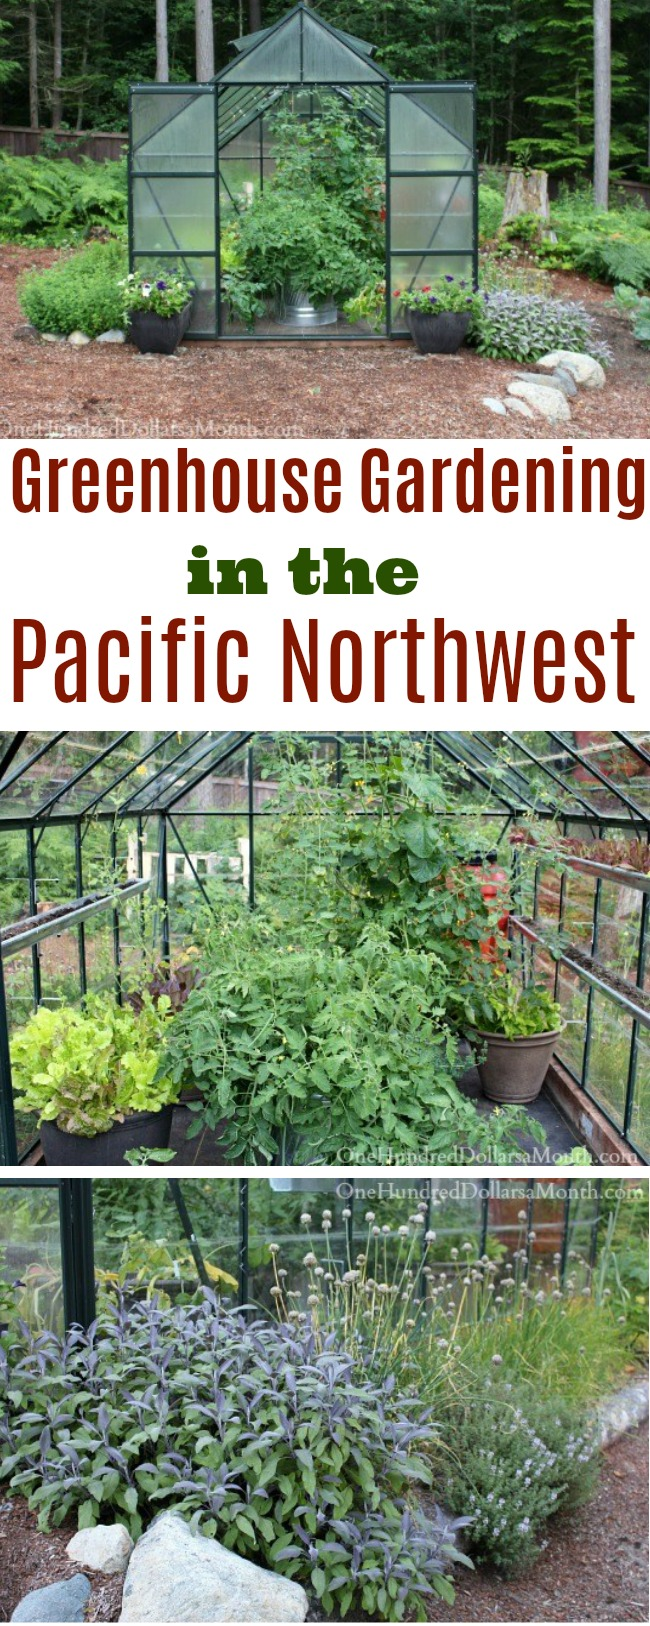 Greenhouse Gardening in the Pacific Northwest – Tomatoes, Herbs and Lettuce